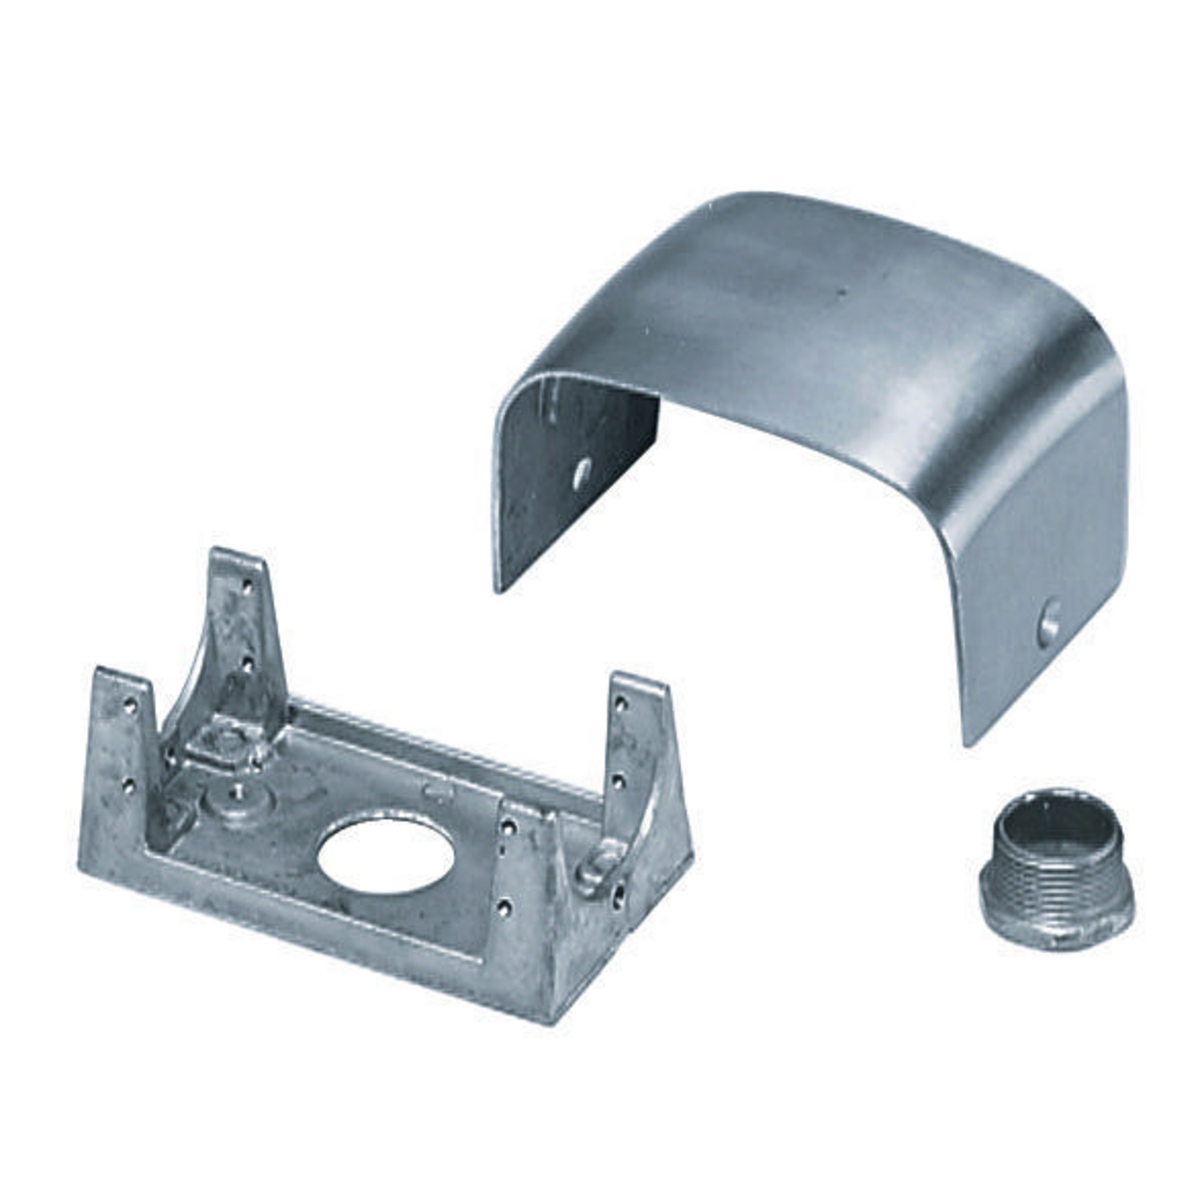 Hubbell SC3098A Frame Housing 3/4 Inch Chase Nipple 2-Gang Die-Cast Aluminum Pedestal